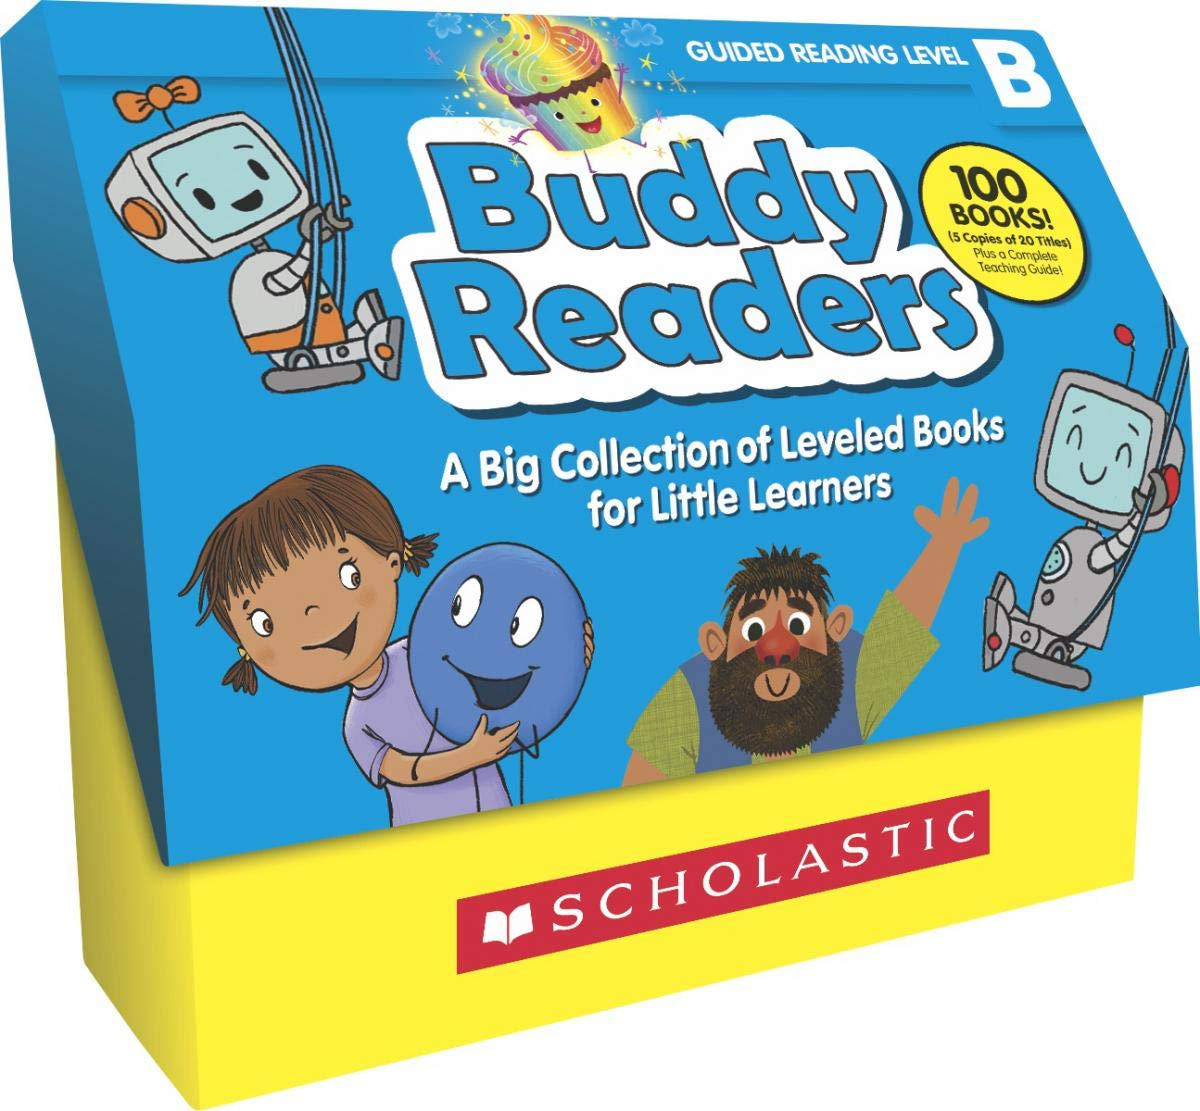 Buddy Readers (Class Set): Level B: A Big Collection of Leveled Books for Little Learners